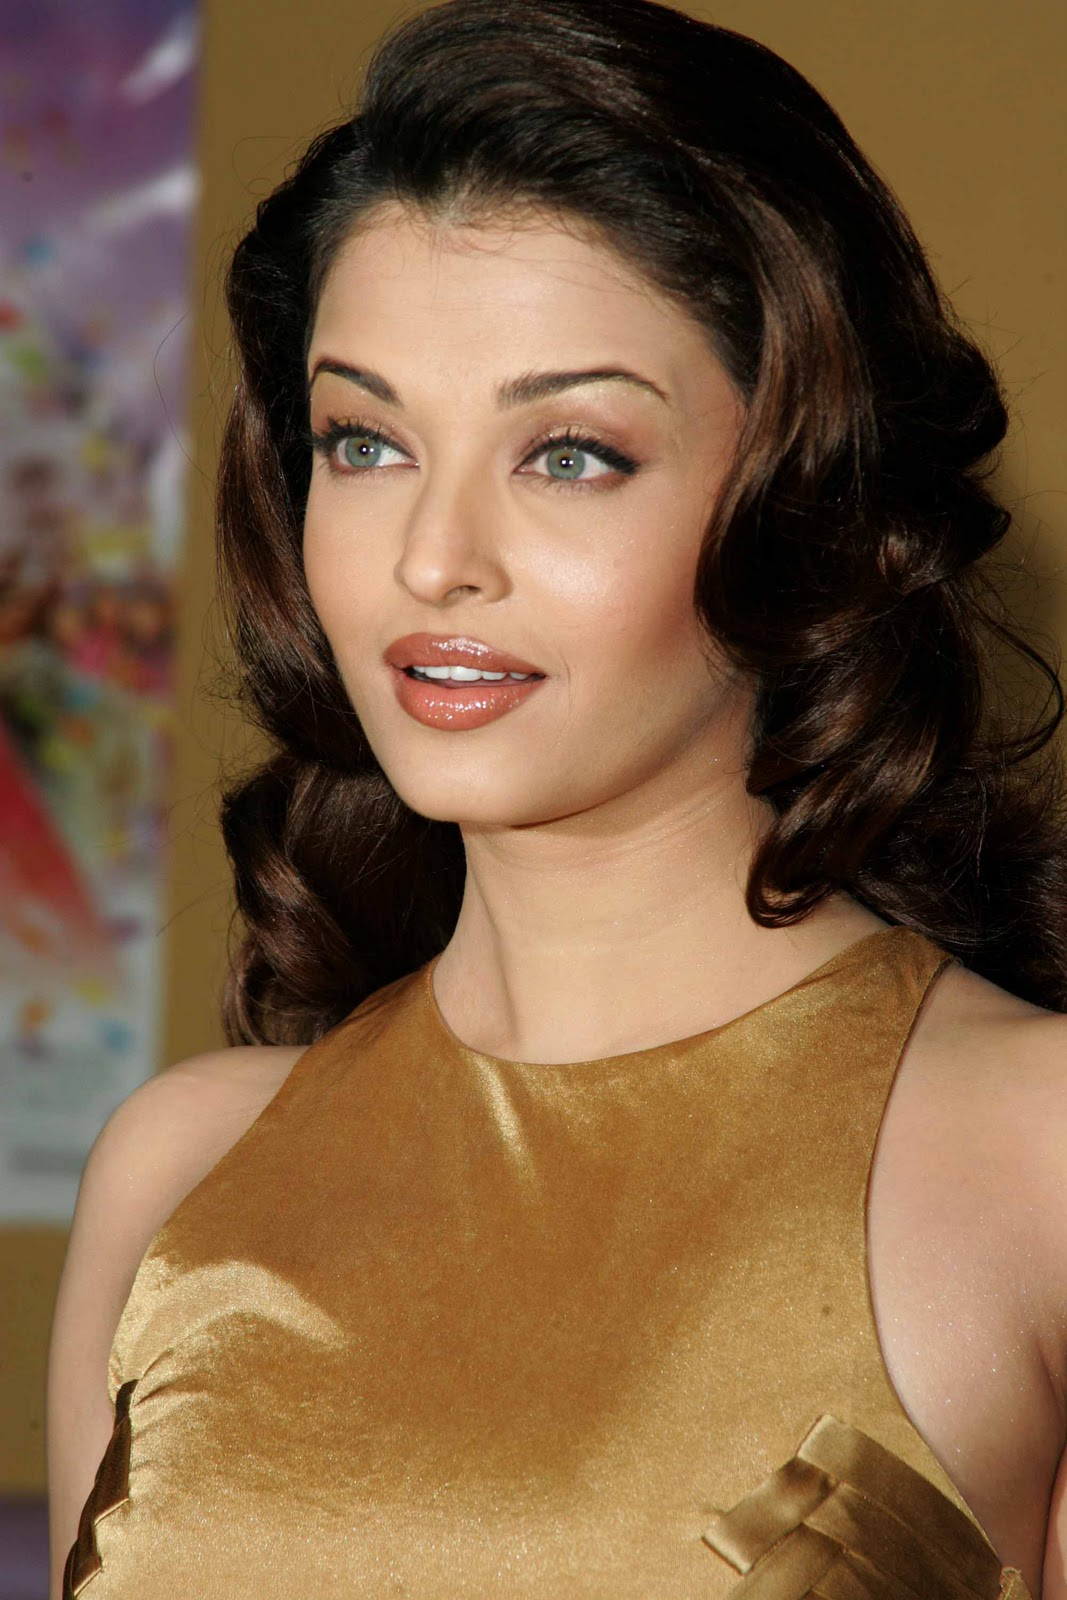 Indian Actress Hd Wallpapers Images Pics Gallery